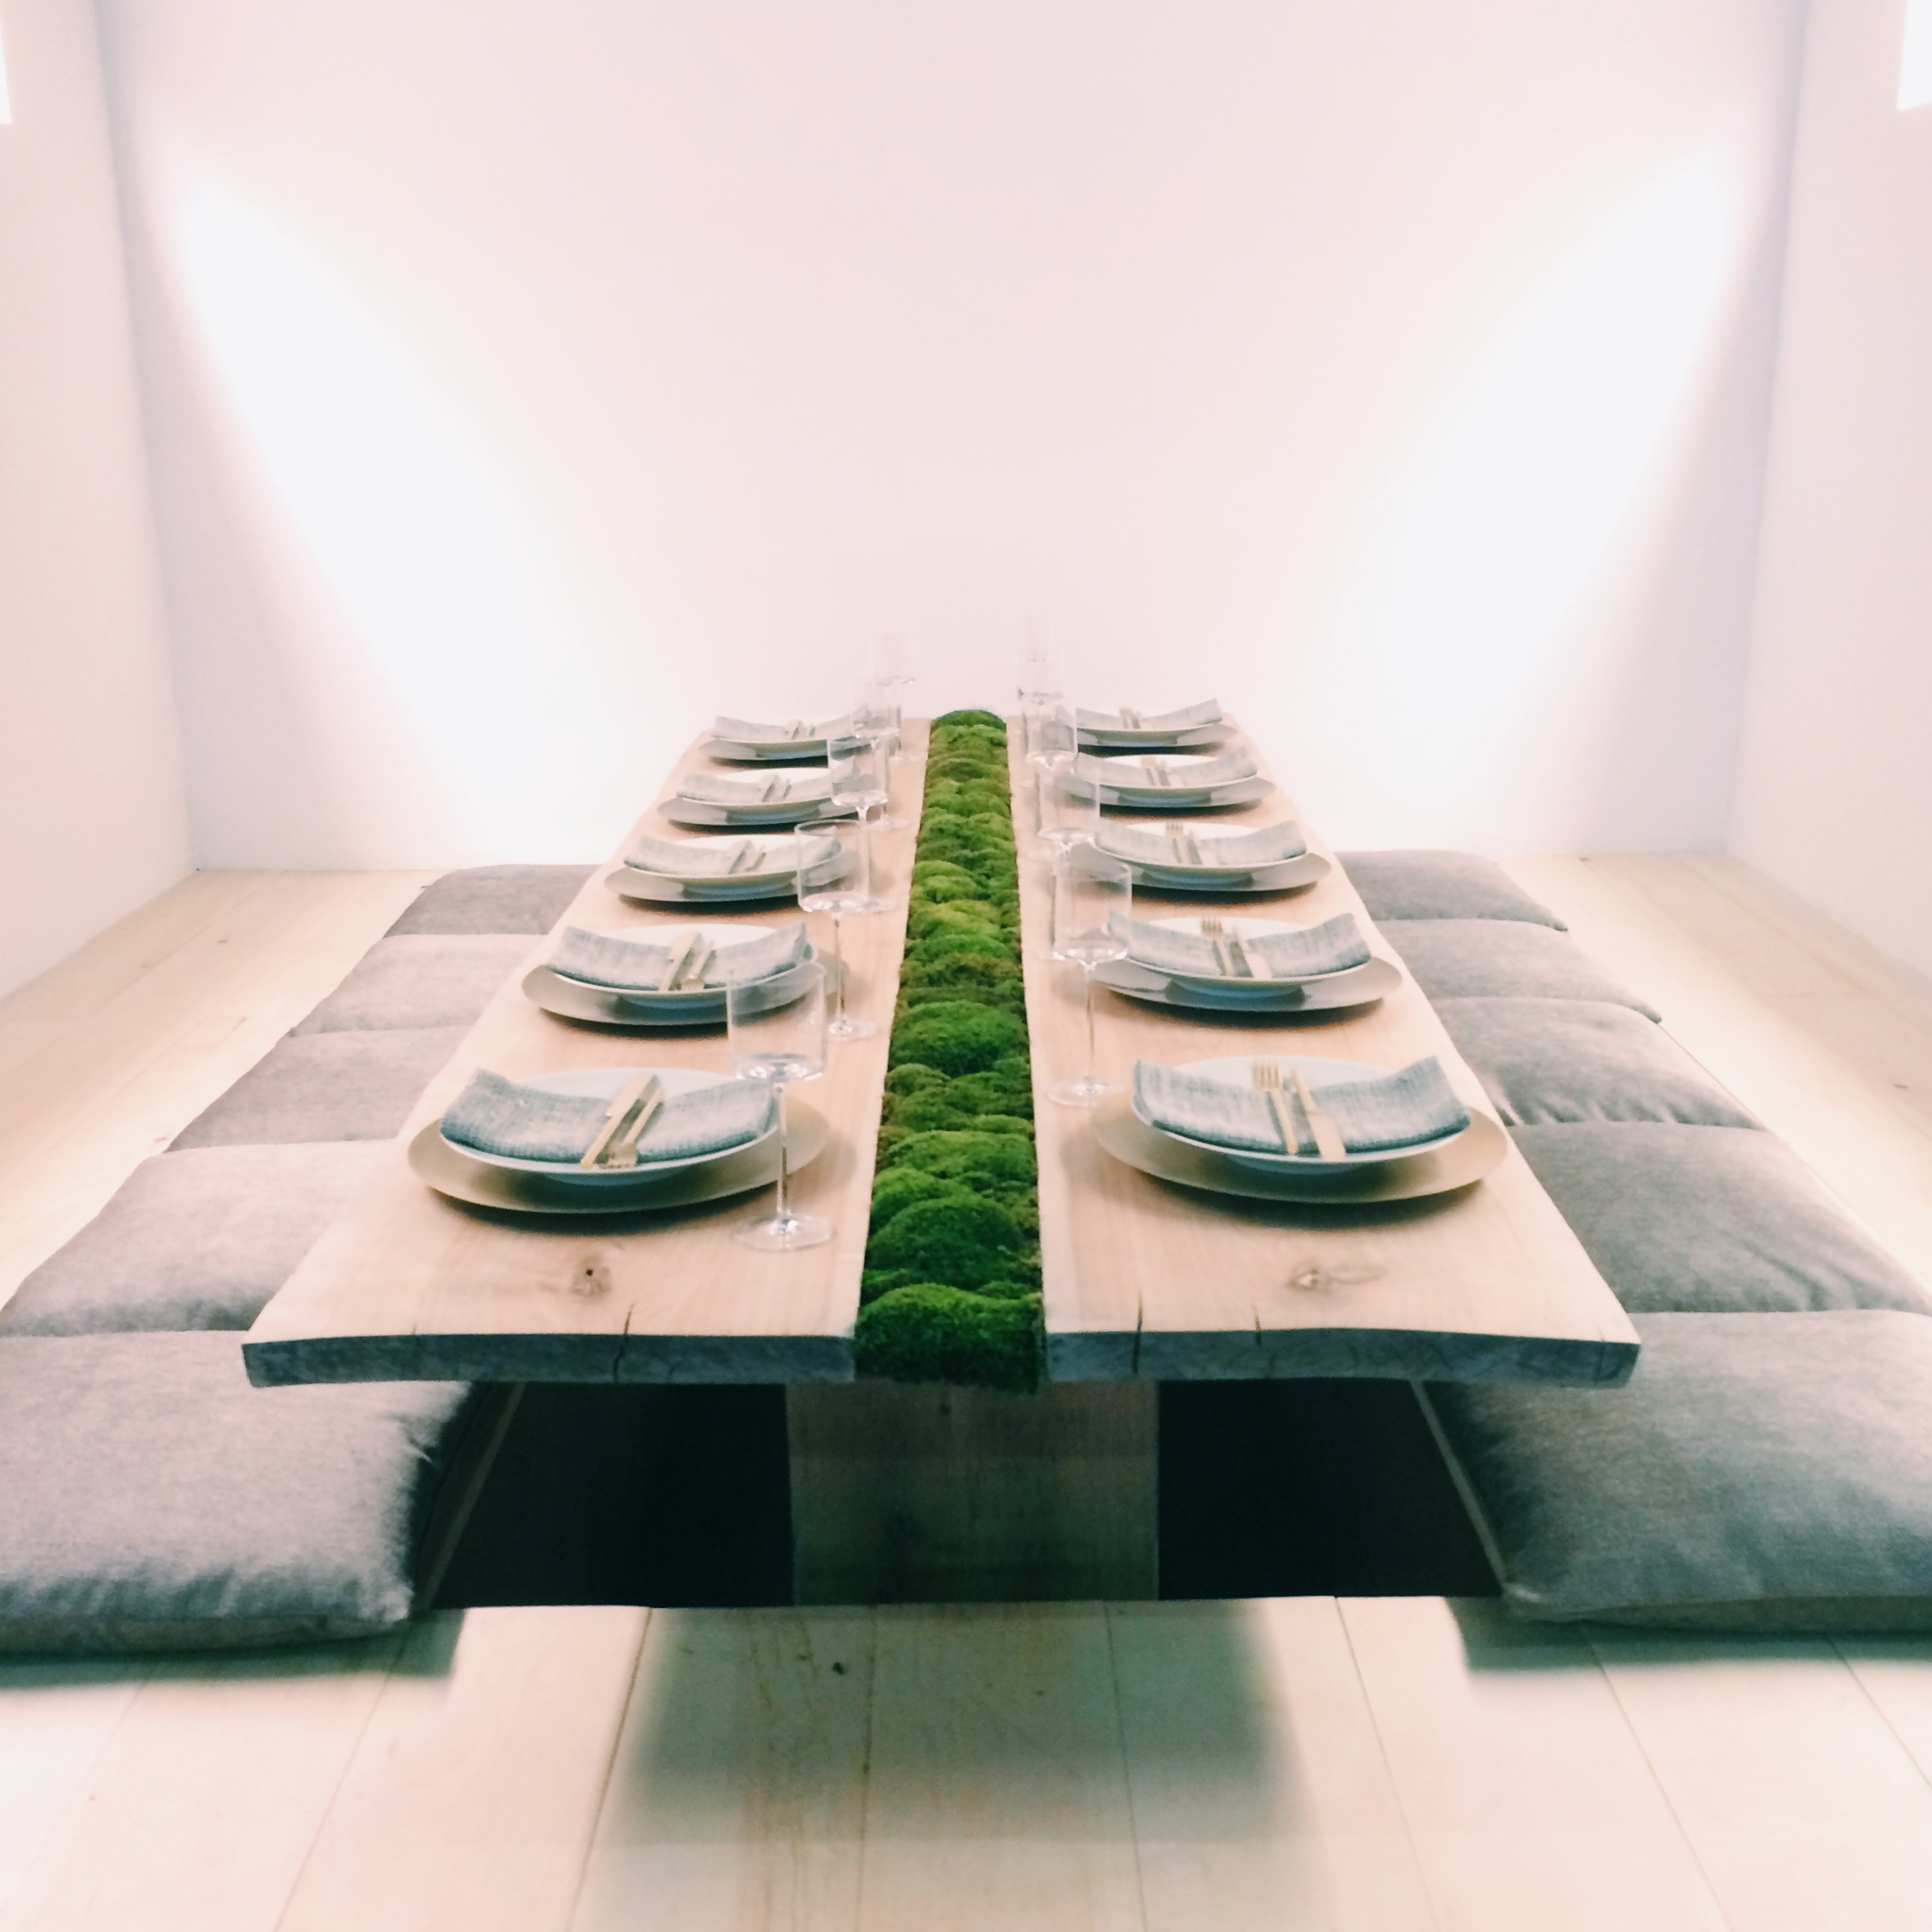 tablescape by calvin klein home. also at DIFFA dining by design 2014.